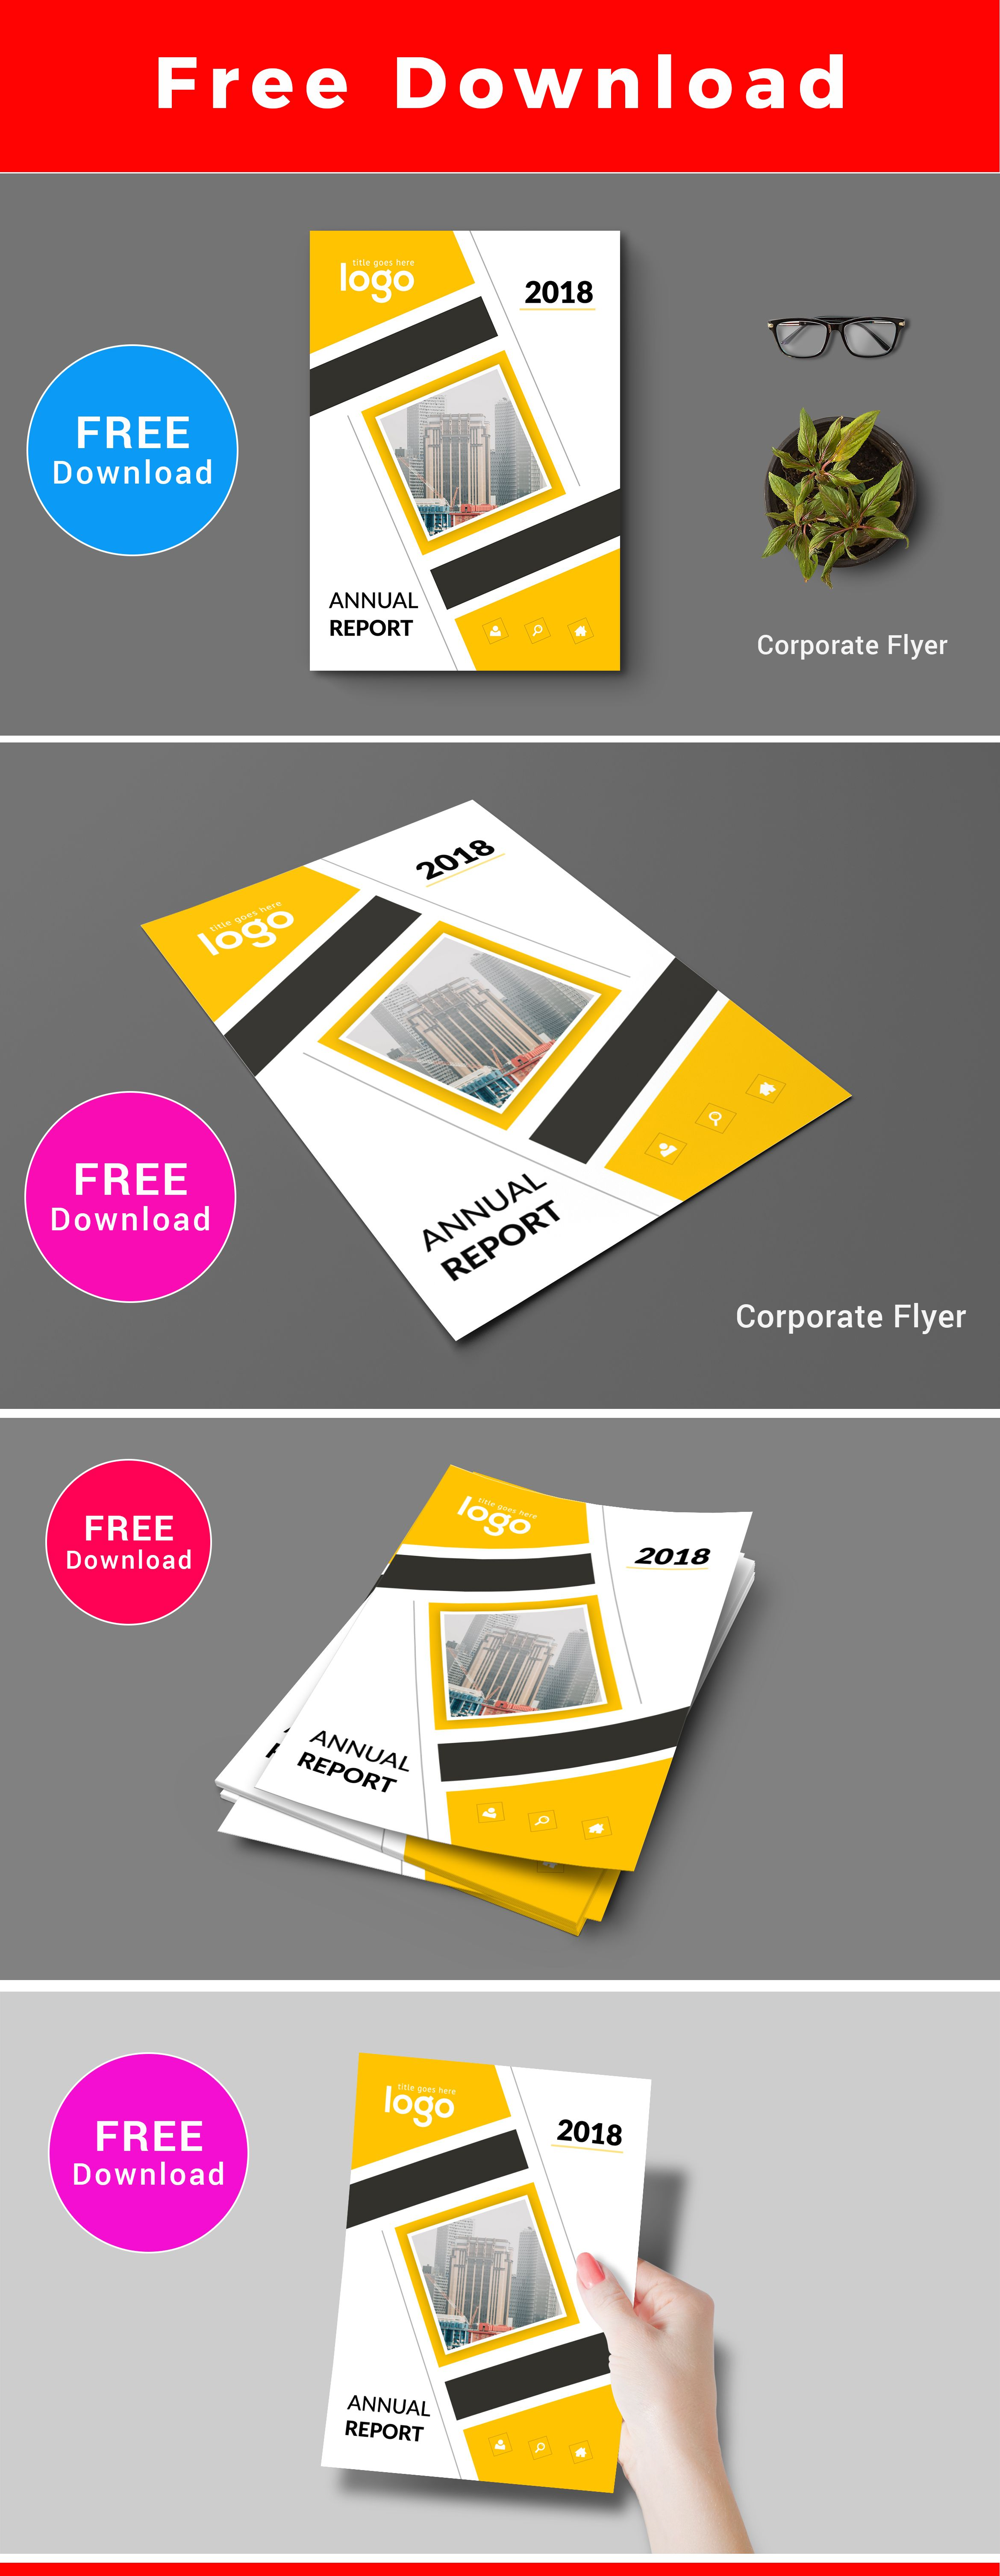 Free Download Flyer Template Corporate Business Bifold Brochure